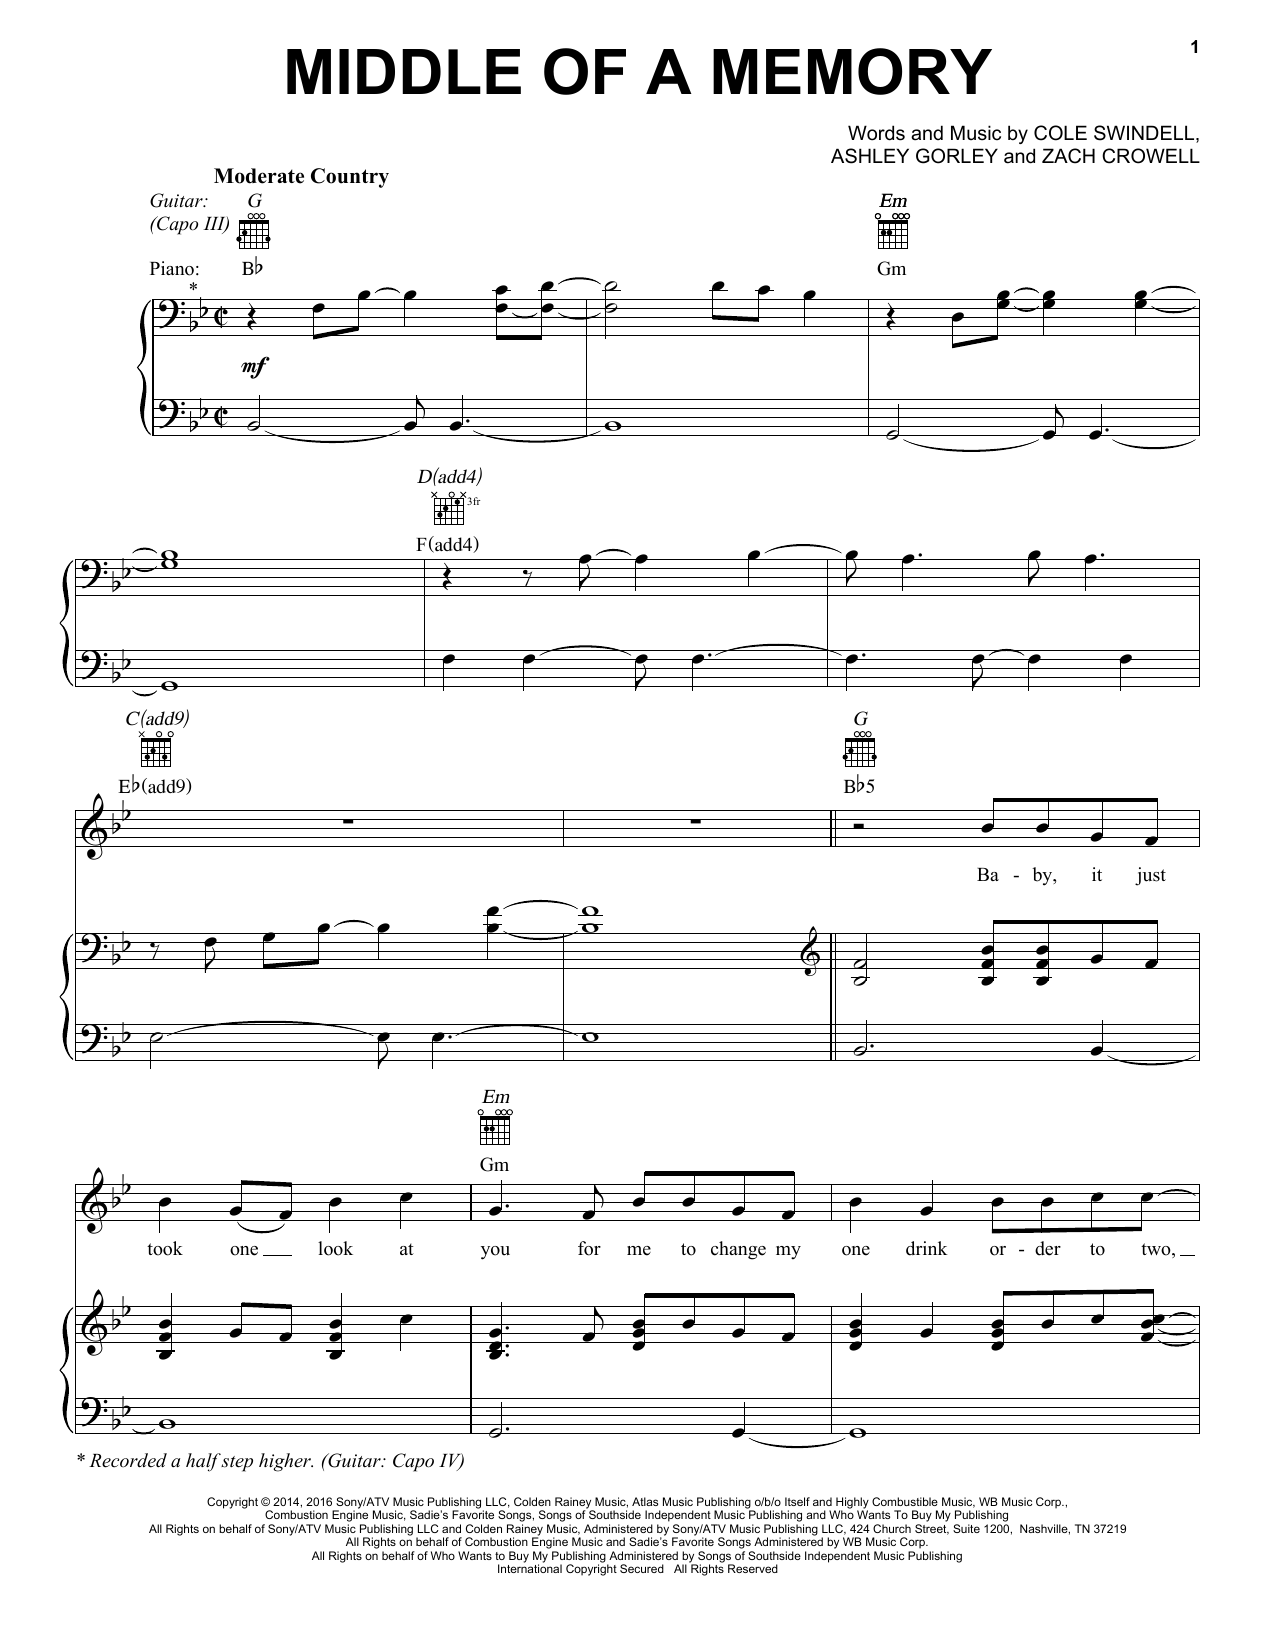 Cole Swindell Middle Of A Memory sheet music notes and chords. Download Printable PDF.